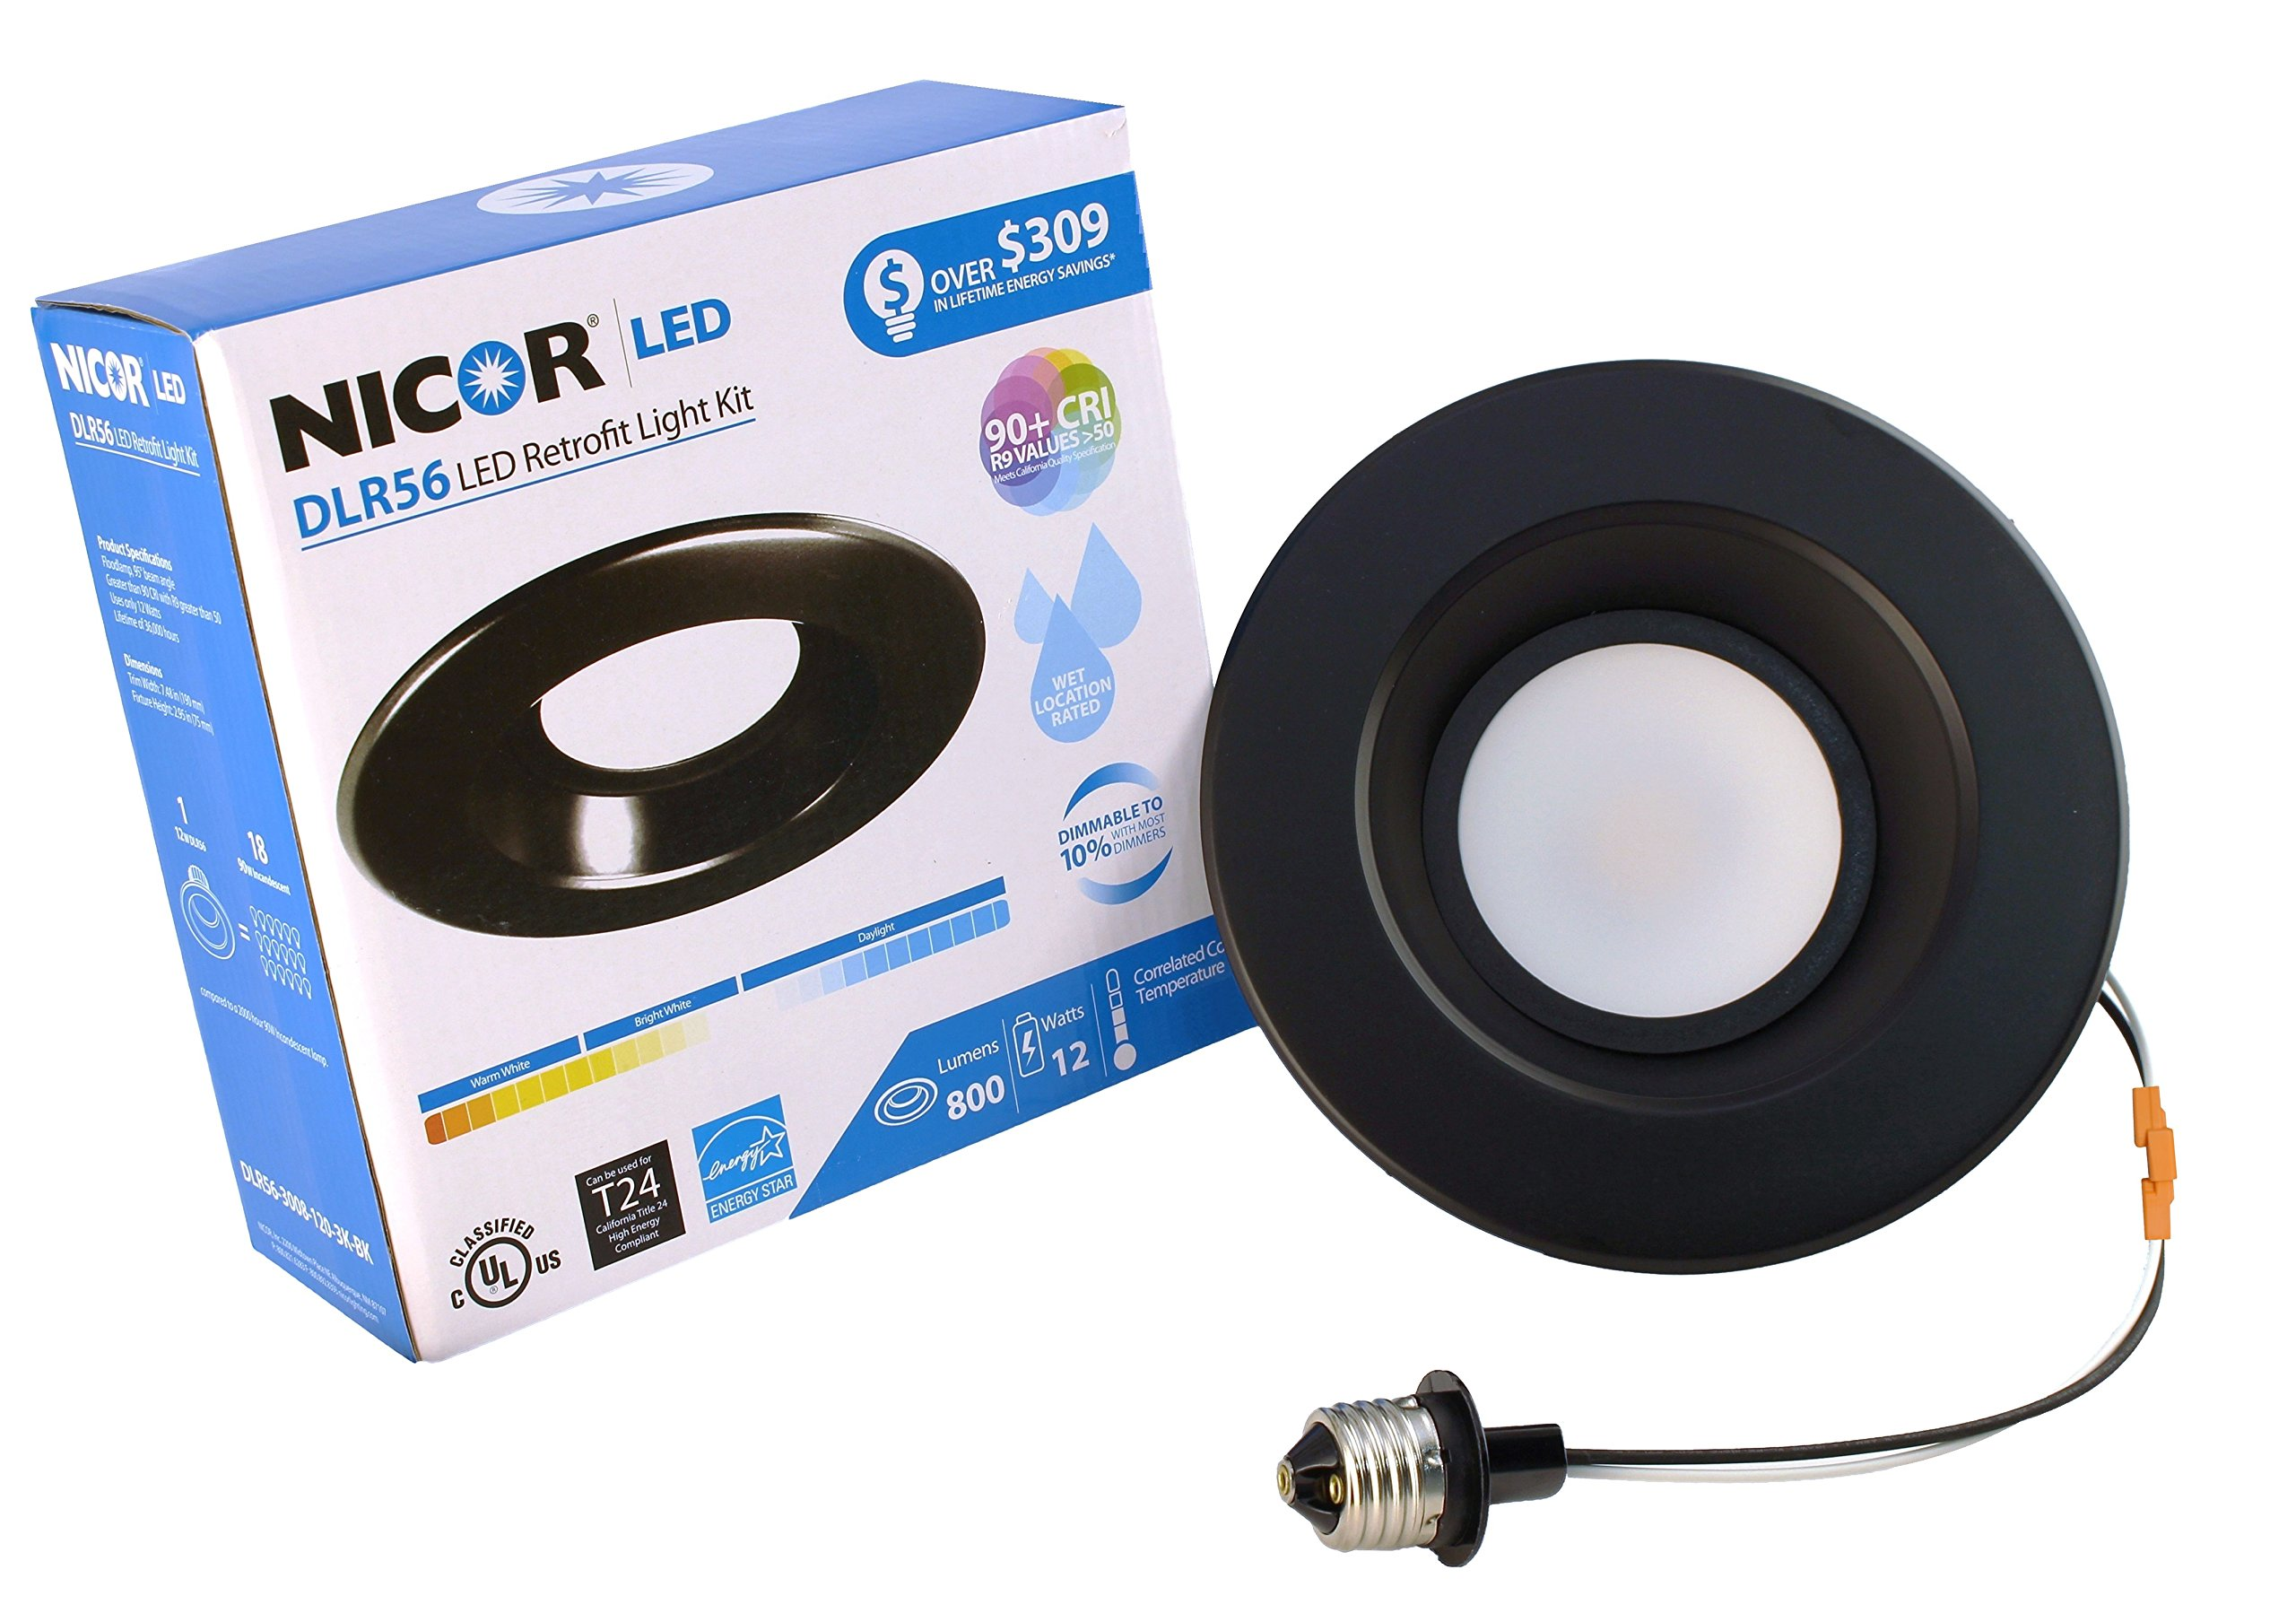 NICOR Lighting 5/6-Inch Dimmable 800-Lumen 3000K LED Downlight Retrofit Kit for Recessed Housings, Black Trim (DLR56-3008-120-3K-BK)